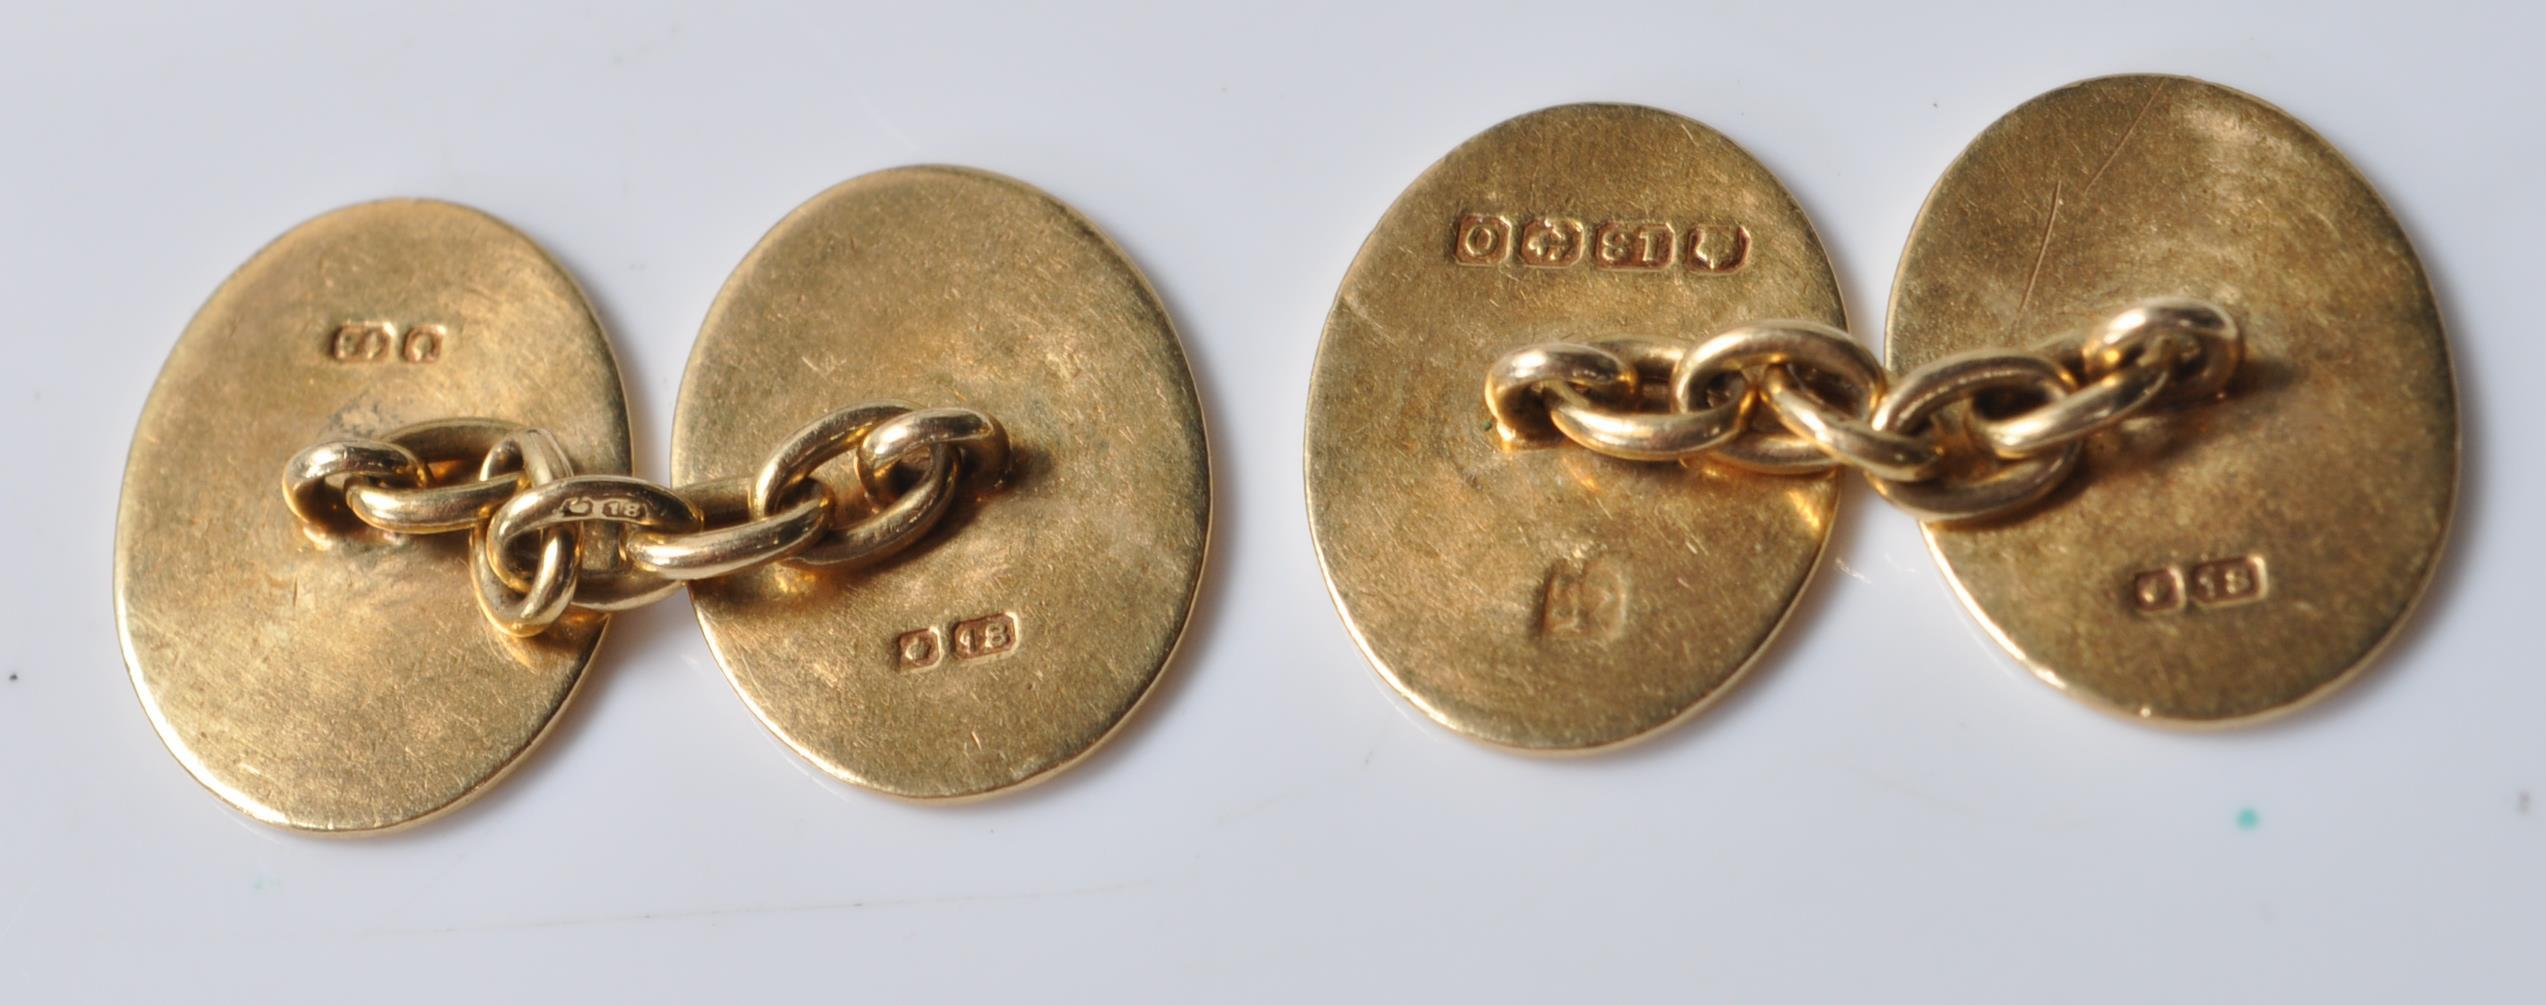 PAIR OF 18CT GOLD CUFFLINKS - Image 4 of 6